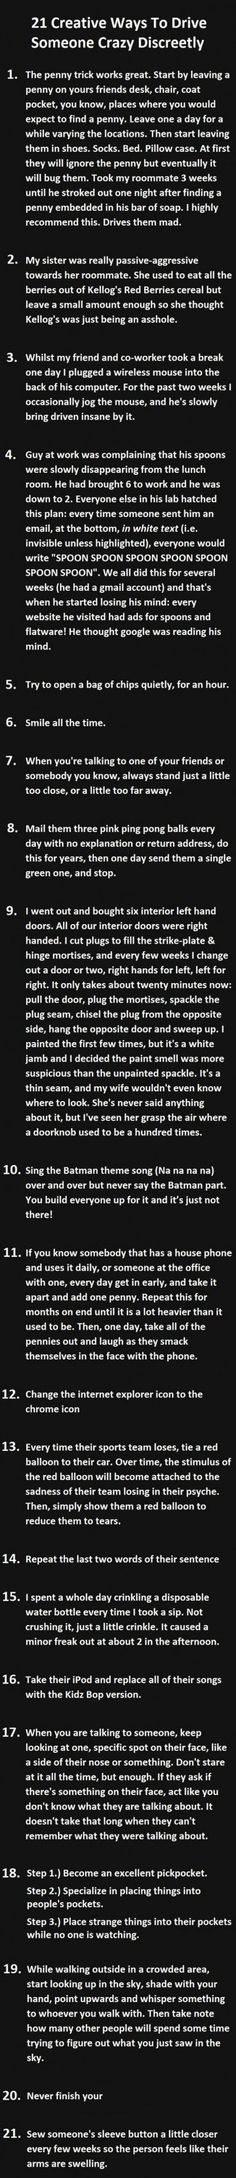 (link) 21 Hilariously Evil Ways to Drive a Person Crazy ~ We all have a little prankster living inside of us. But how far would you go? Are you more the type to play a simple little joke at their expense or are you someone who would engage in a month long con that slowly drives them a bit insane? These 21 ways of driving someone crazy all vary in difficulty, but they all have the same hilarious result if you keep it up for a while.  ~ for more great PINs, visit @djohnisee ~ have fun!